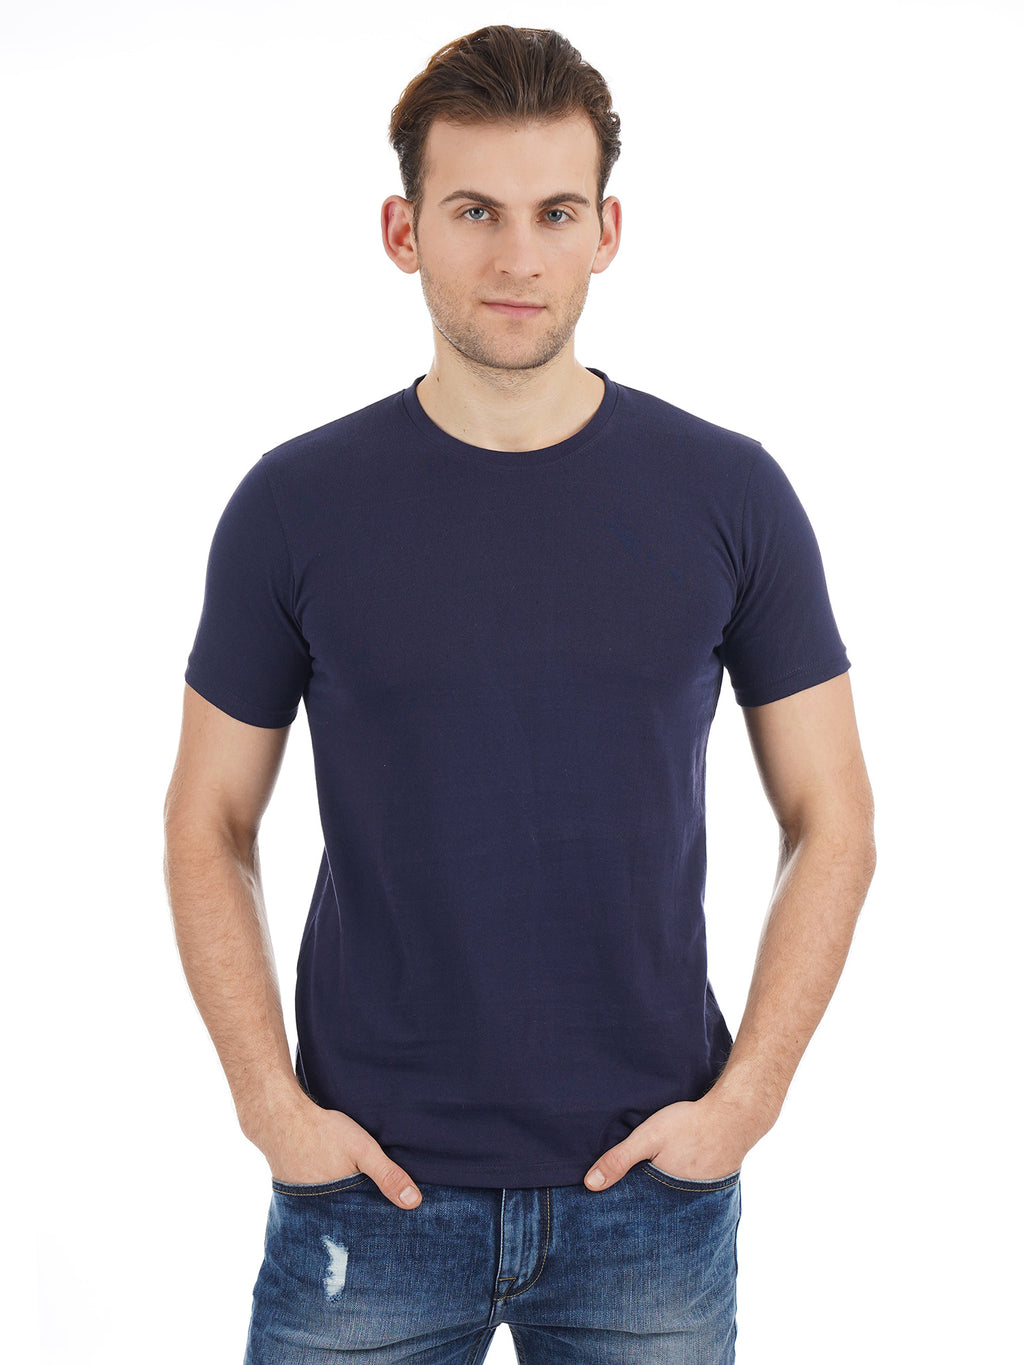 Rock Hooper Men's Half Sleeve Cotton Navy Blue Round Neck T-Shirt